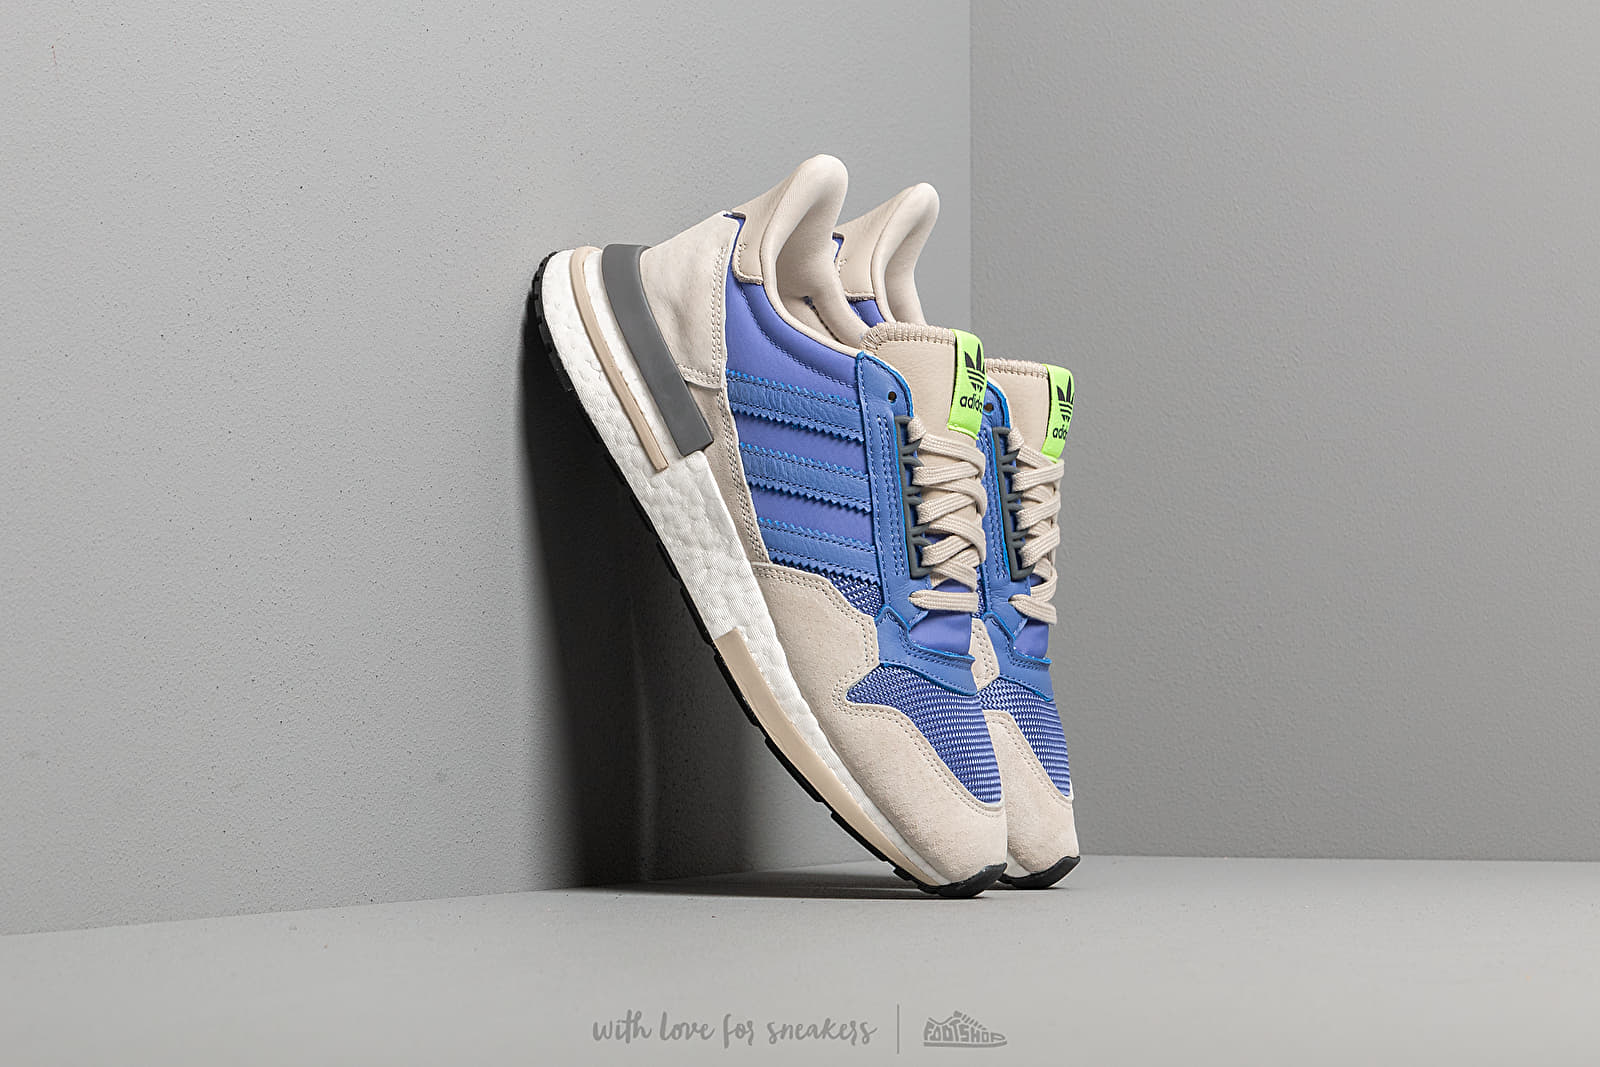 Adidas Adidas zx500 boost Sale, Amazing Discounts Available